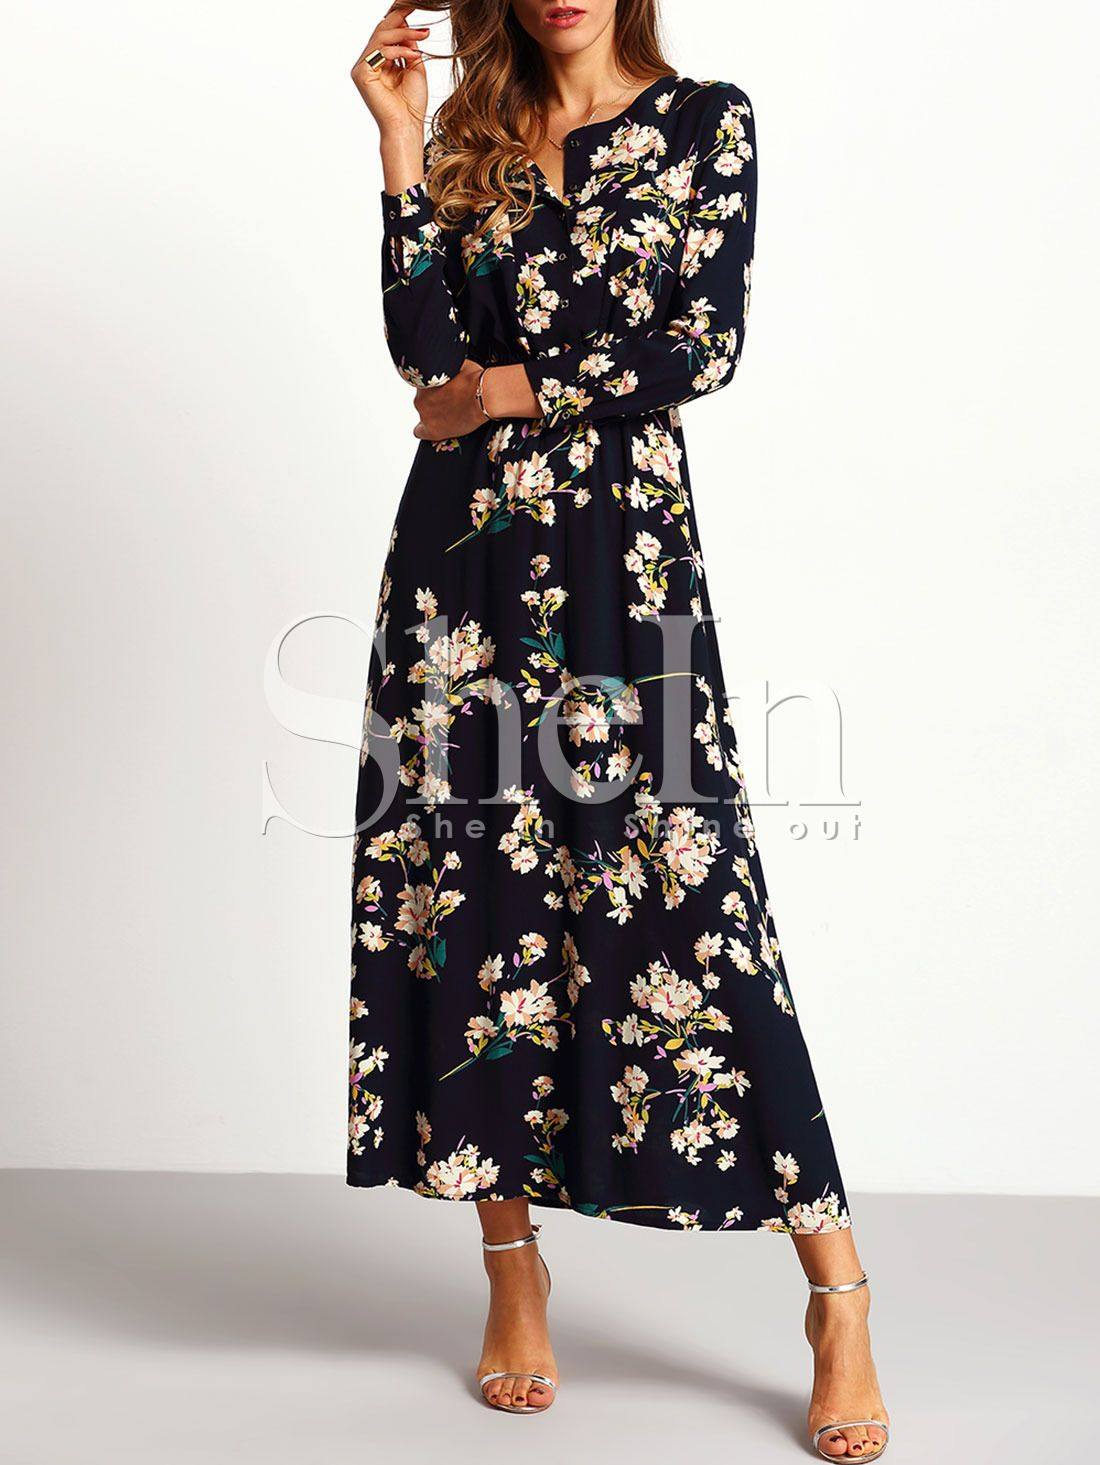 a39ec4f5e1 Shop Navy Long Sleeve Floral Maxi Dress online. SheIn offers Navy Long  Sleeve Floral Maxi Dress & more to fit your fashionable needs.